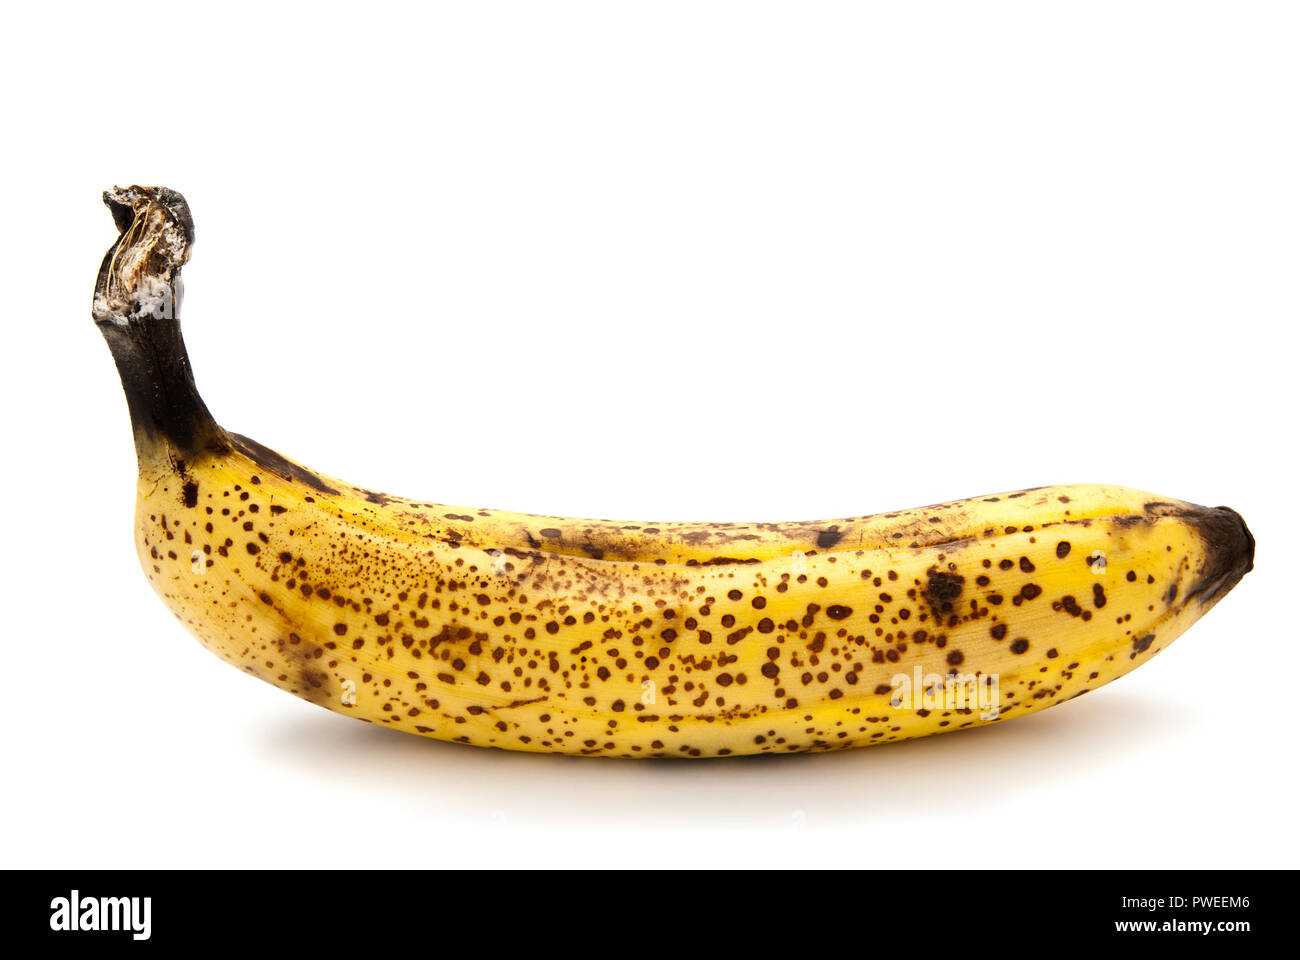 rotten banana isolated on a white background - Stock Image